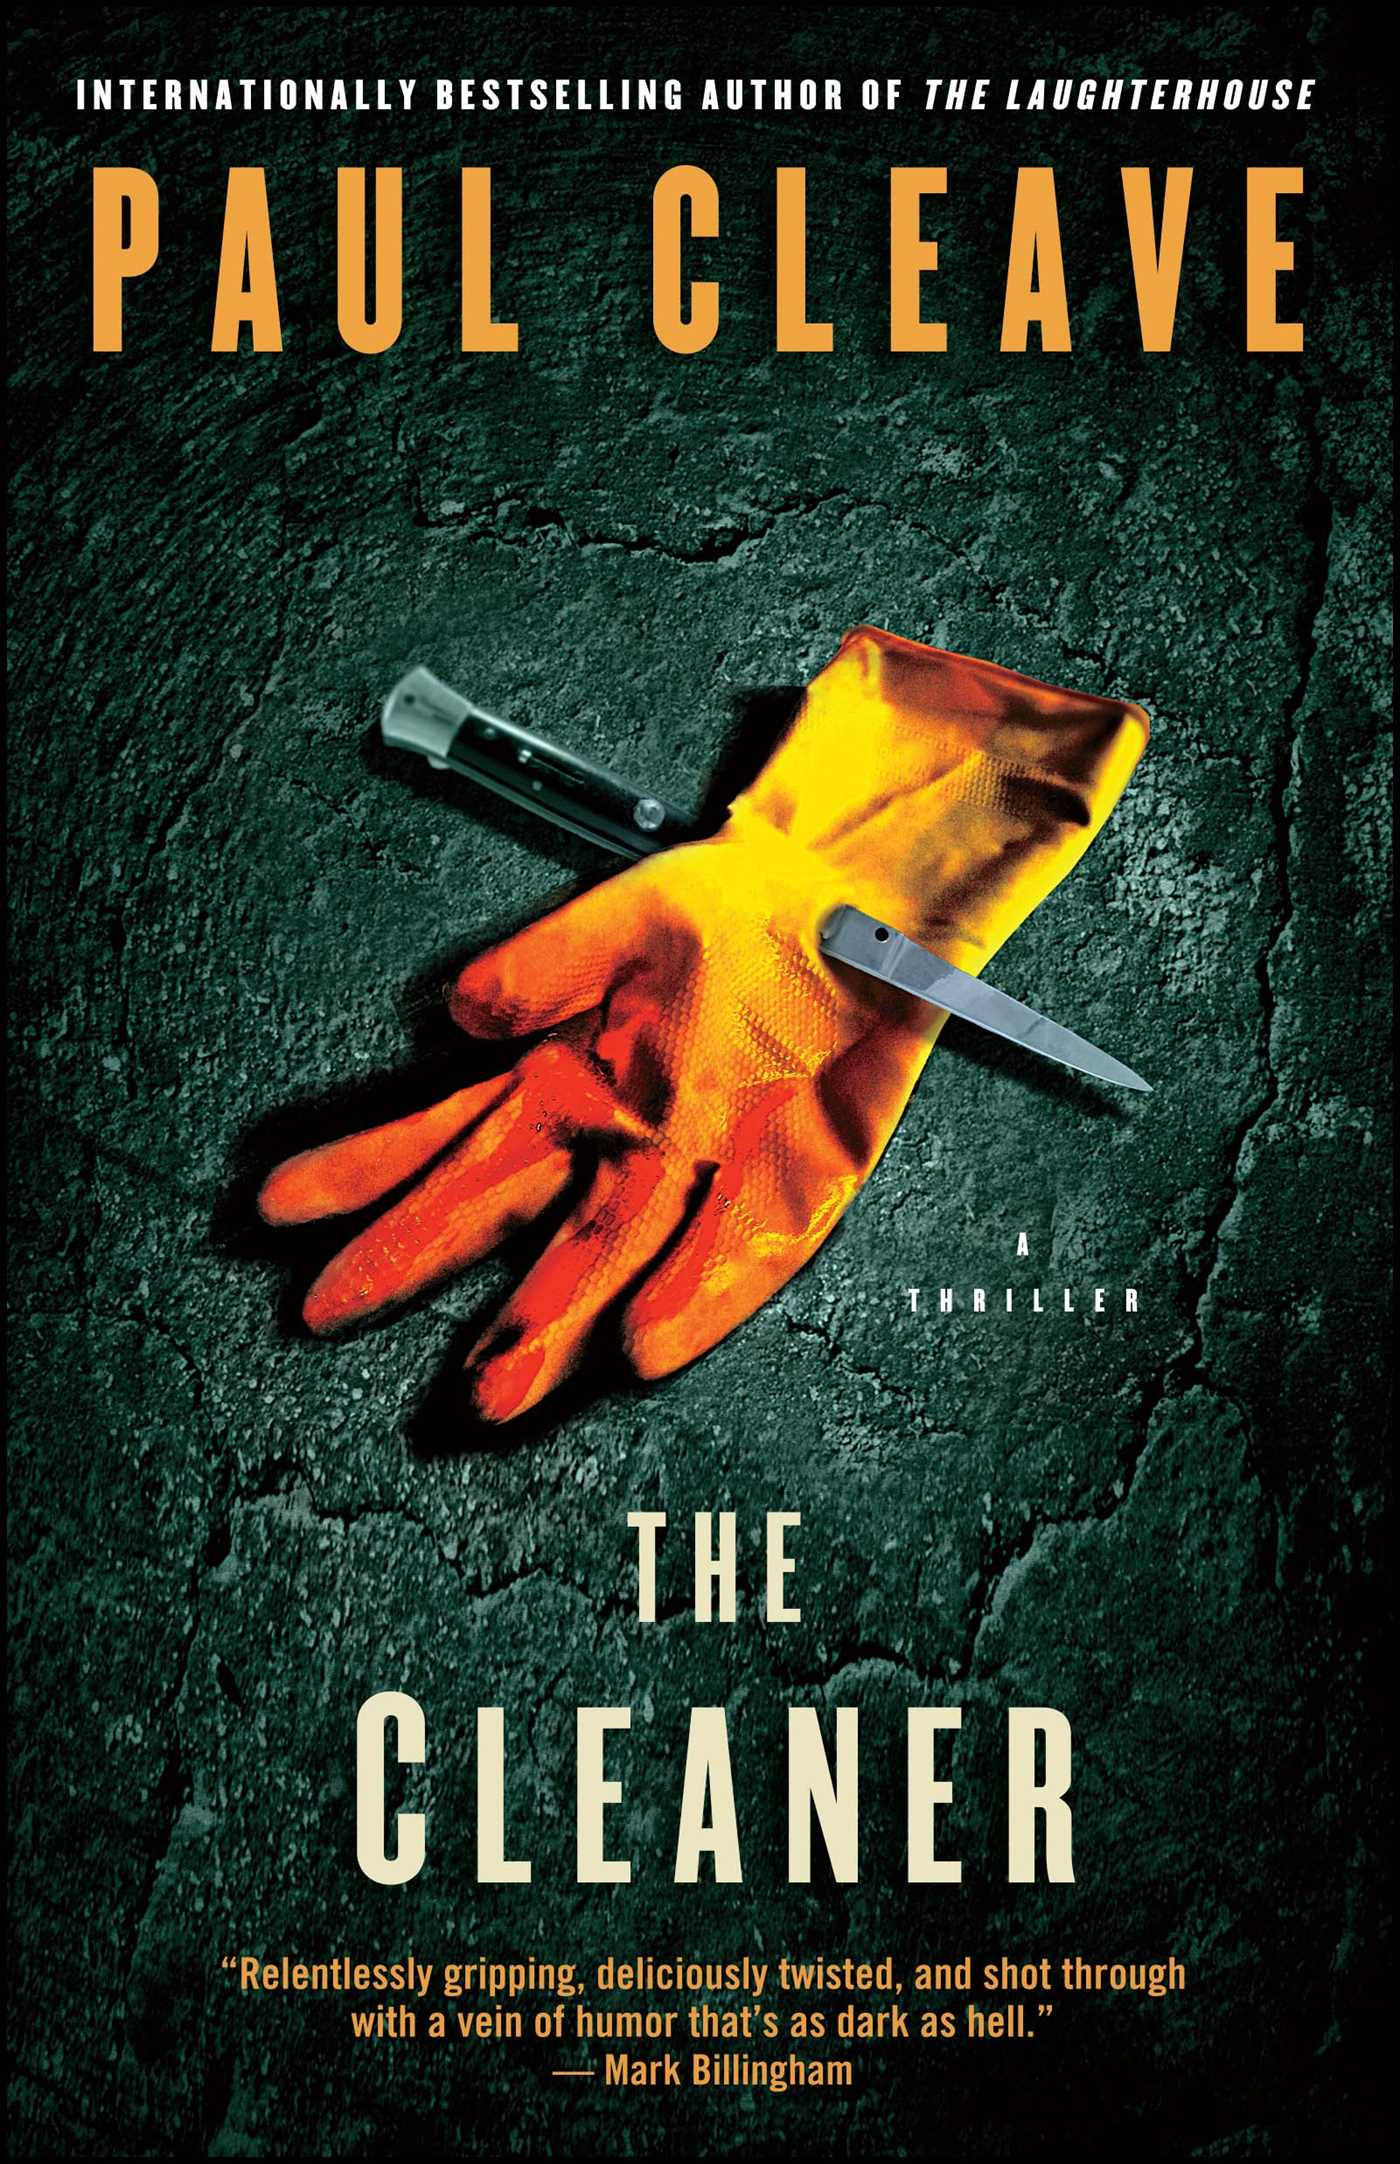 The-cleaner-9781451677799_hr